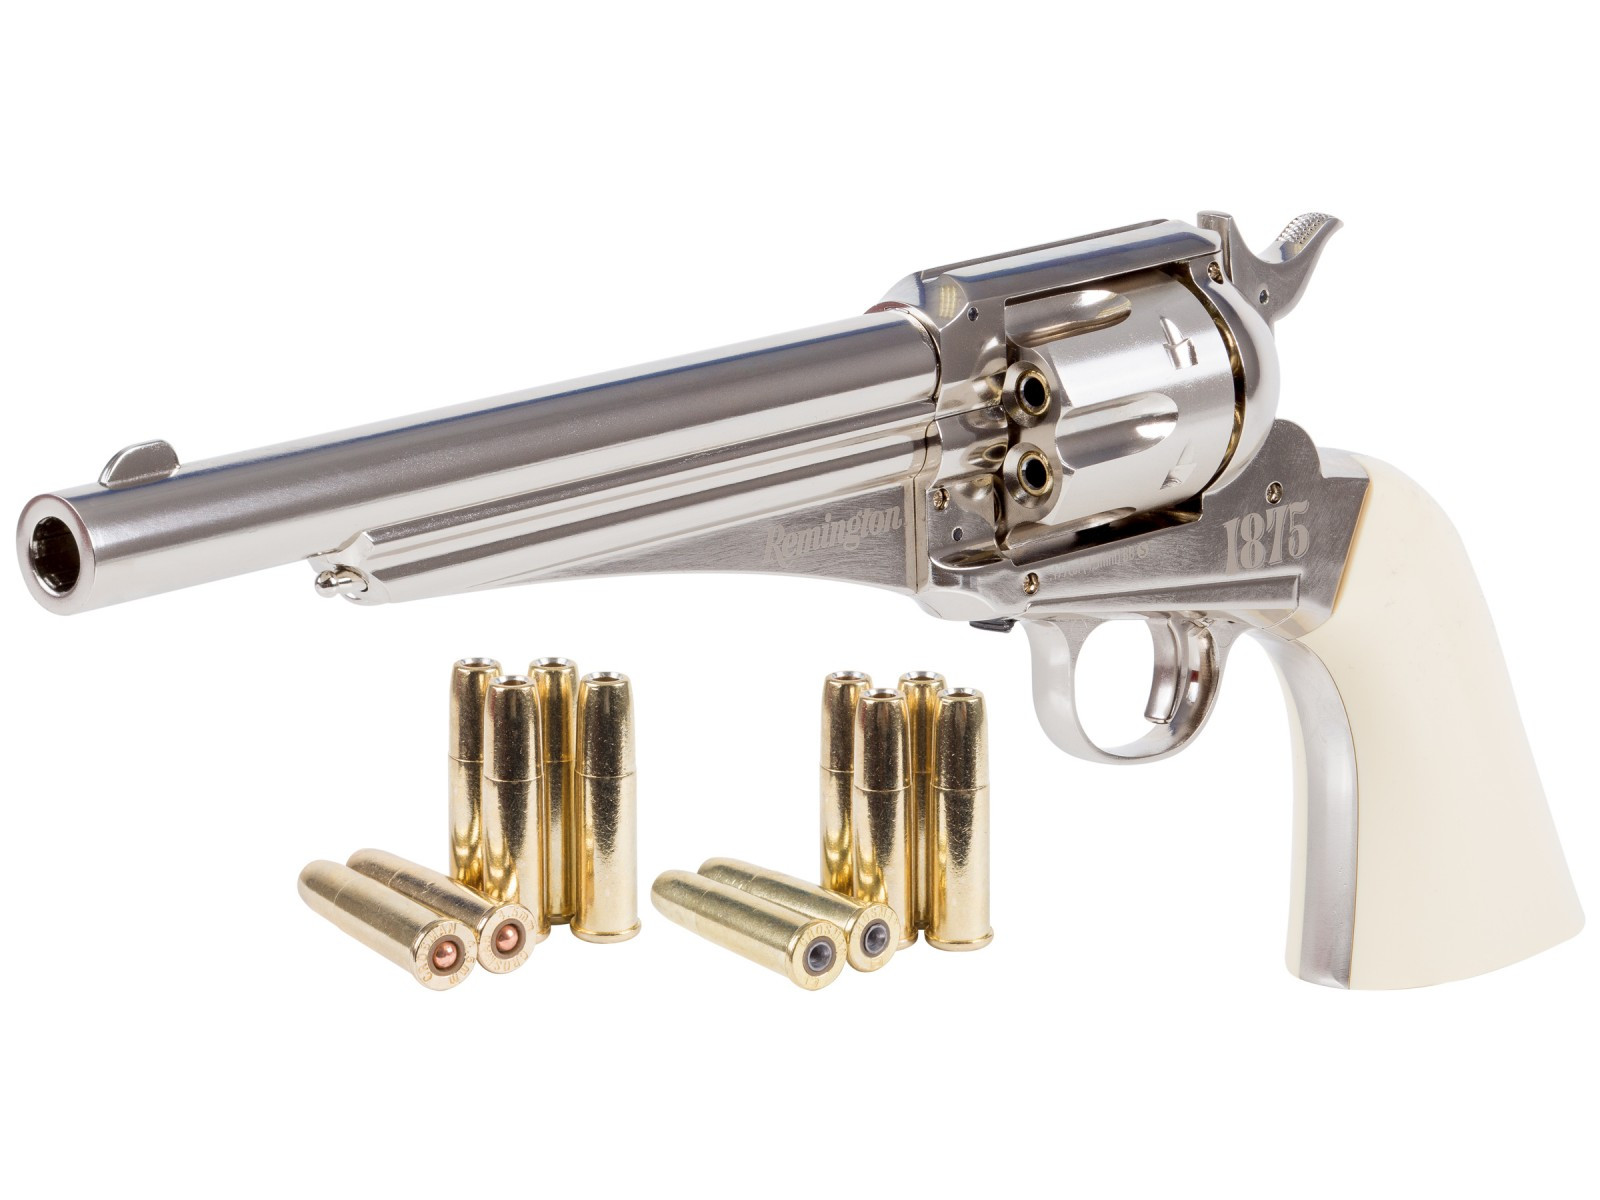 Remington 1875 Dual Ammo Replica Revolver